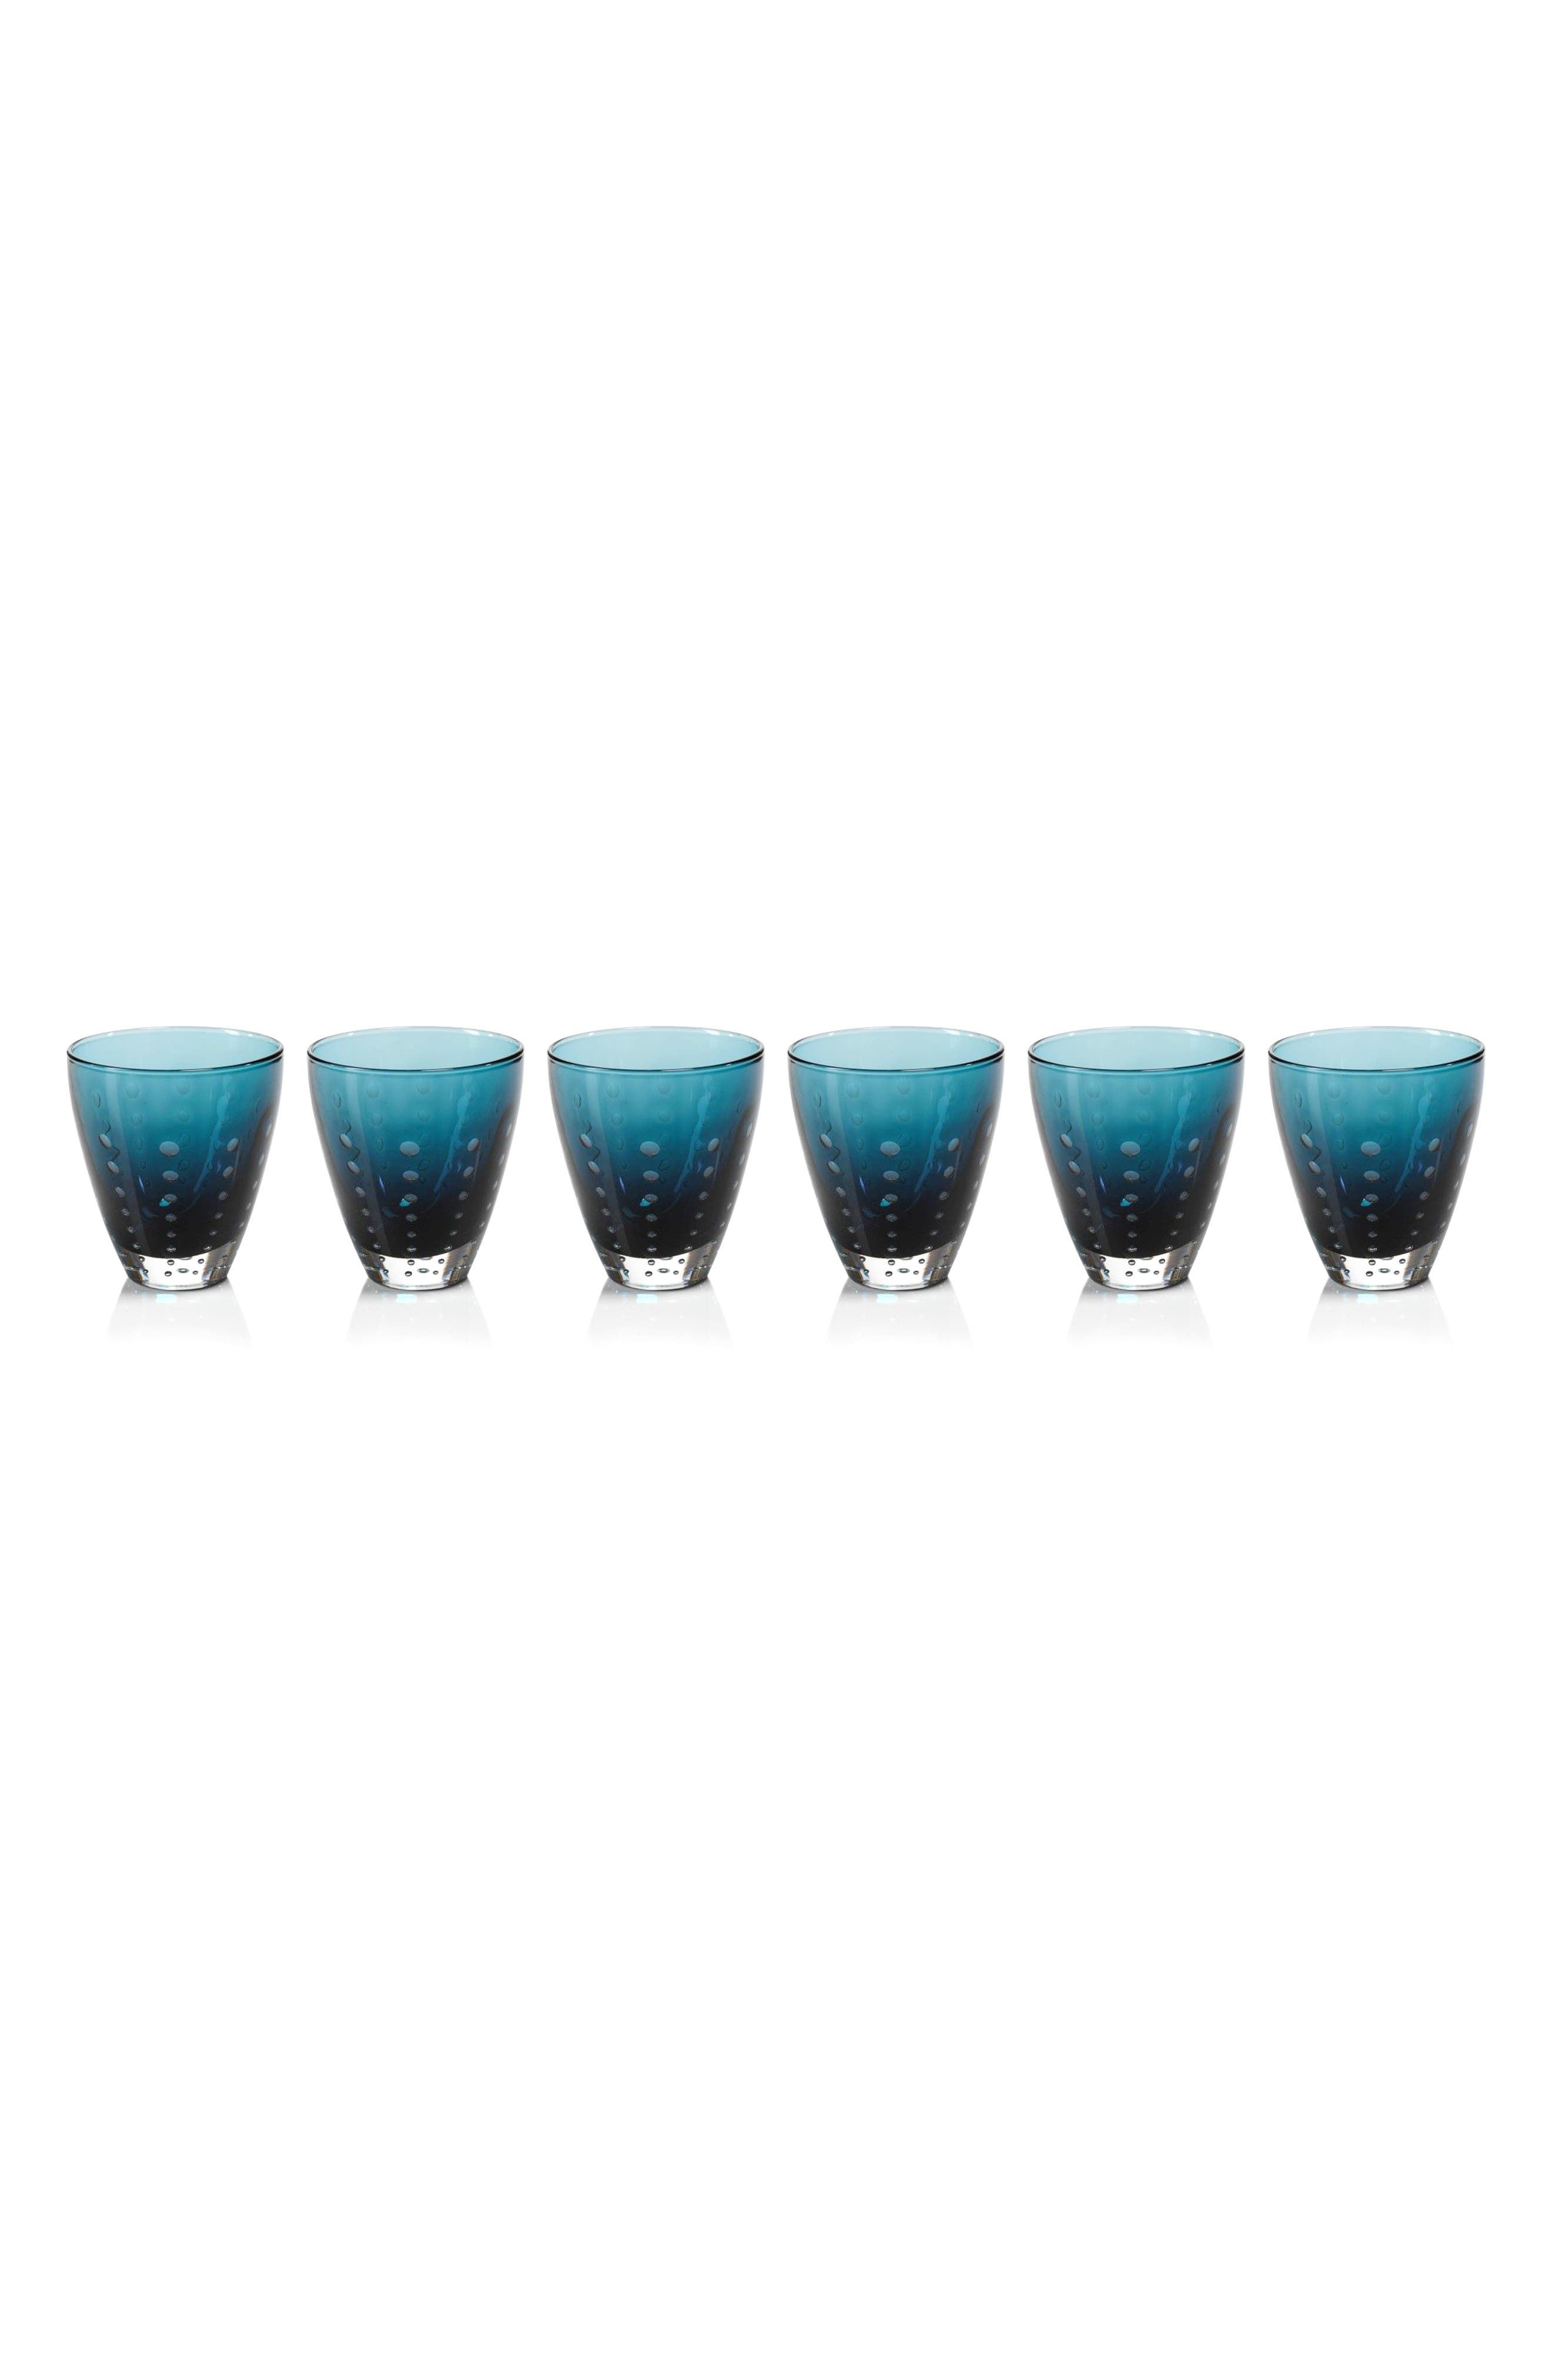 Bubbled Set of 6 Double Old Fashioned Glasses,                         Main,                         color, Blue